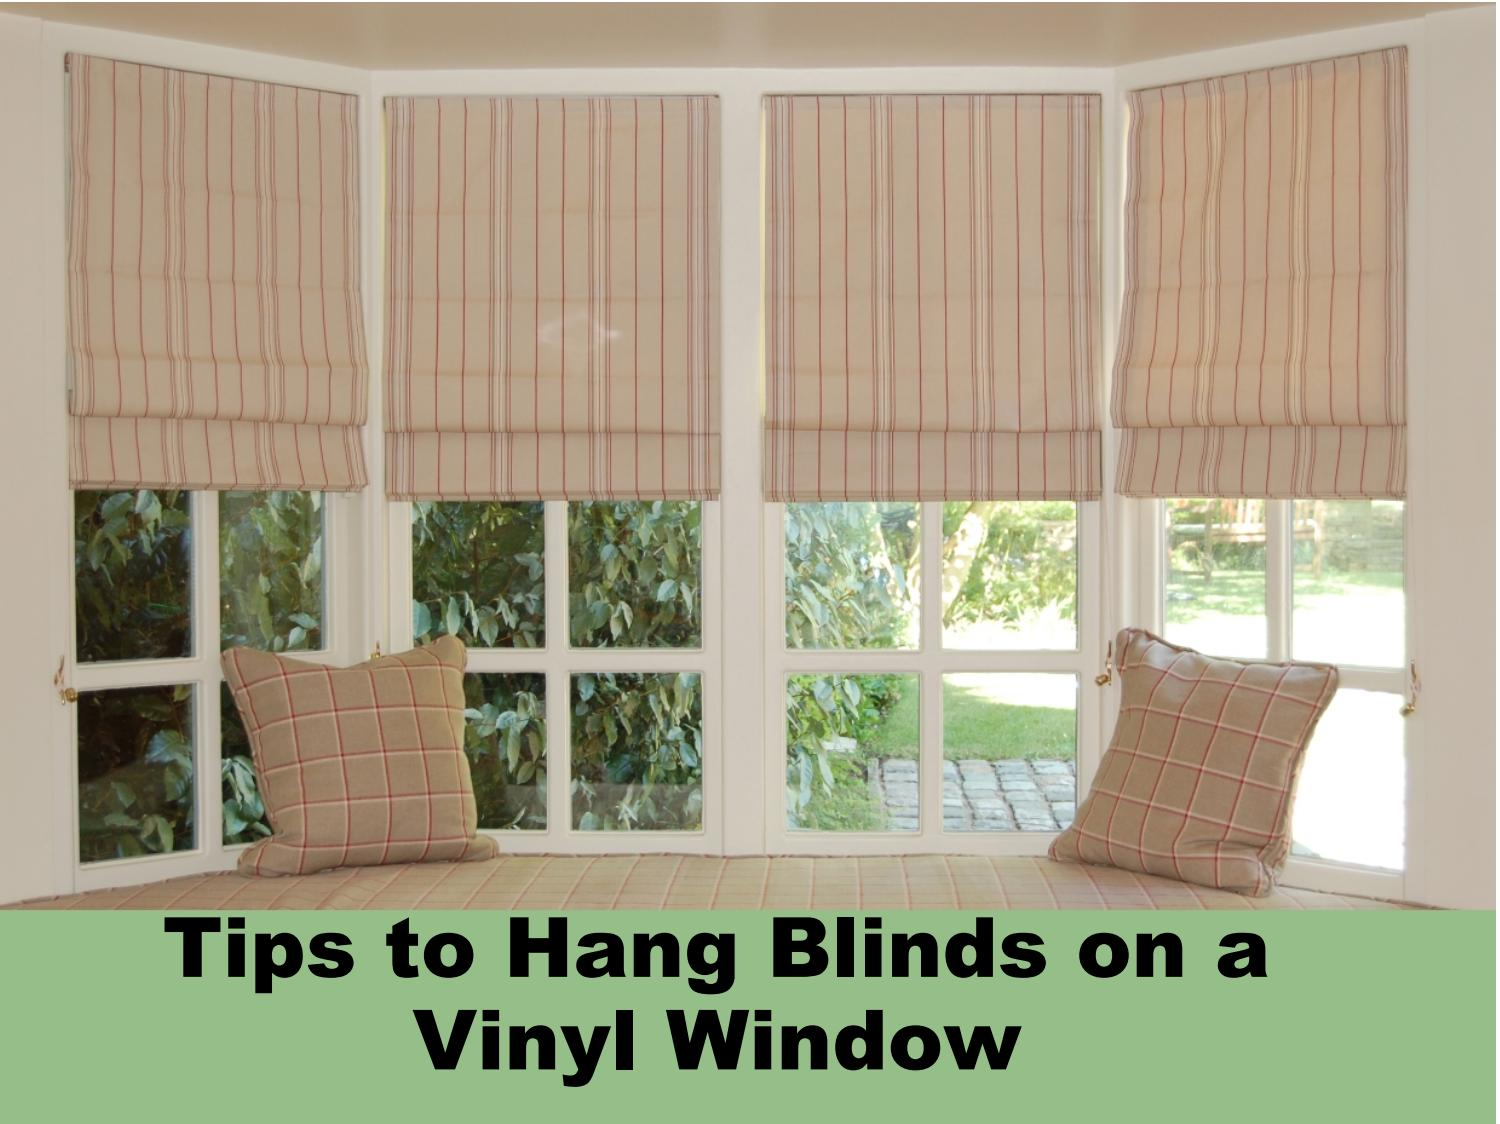 The type of window treatments for vinyl   windows